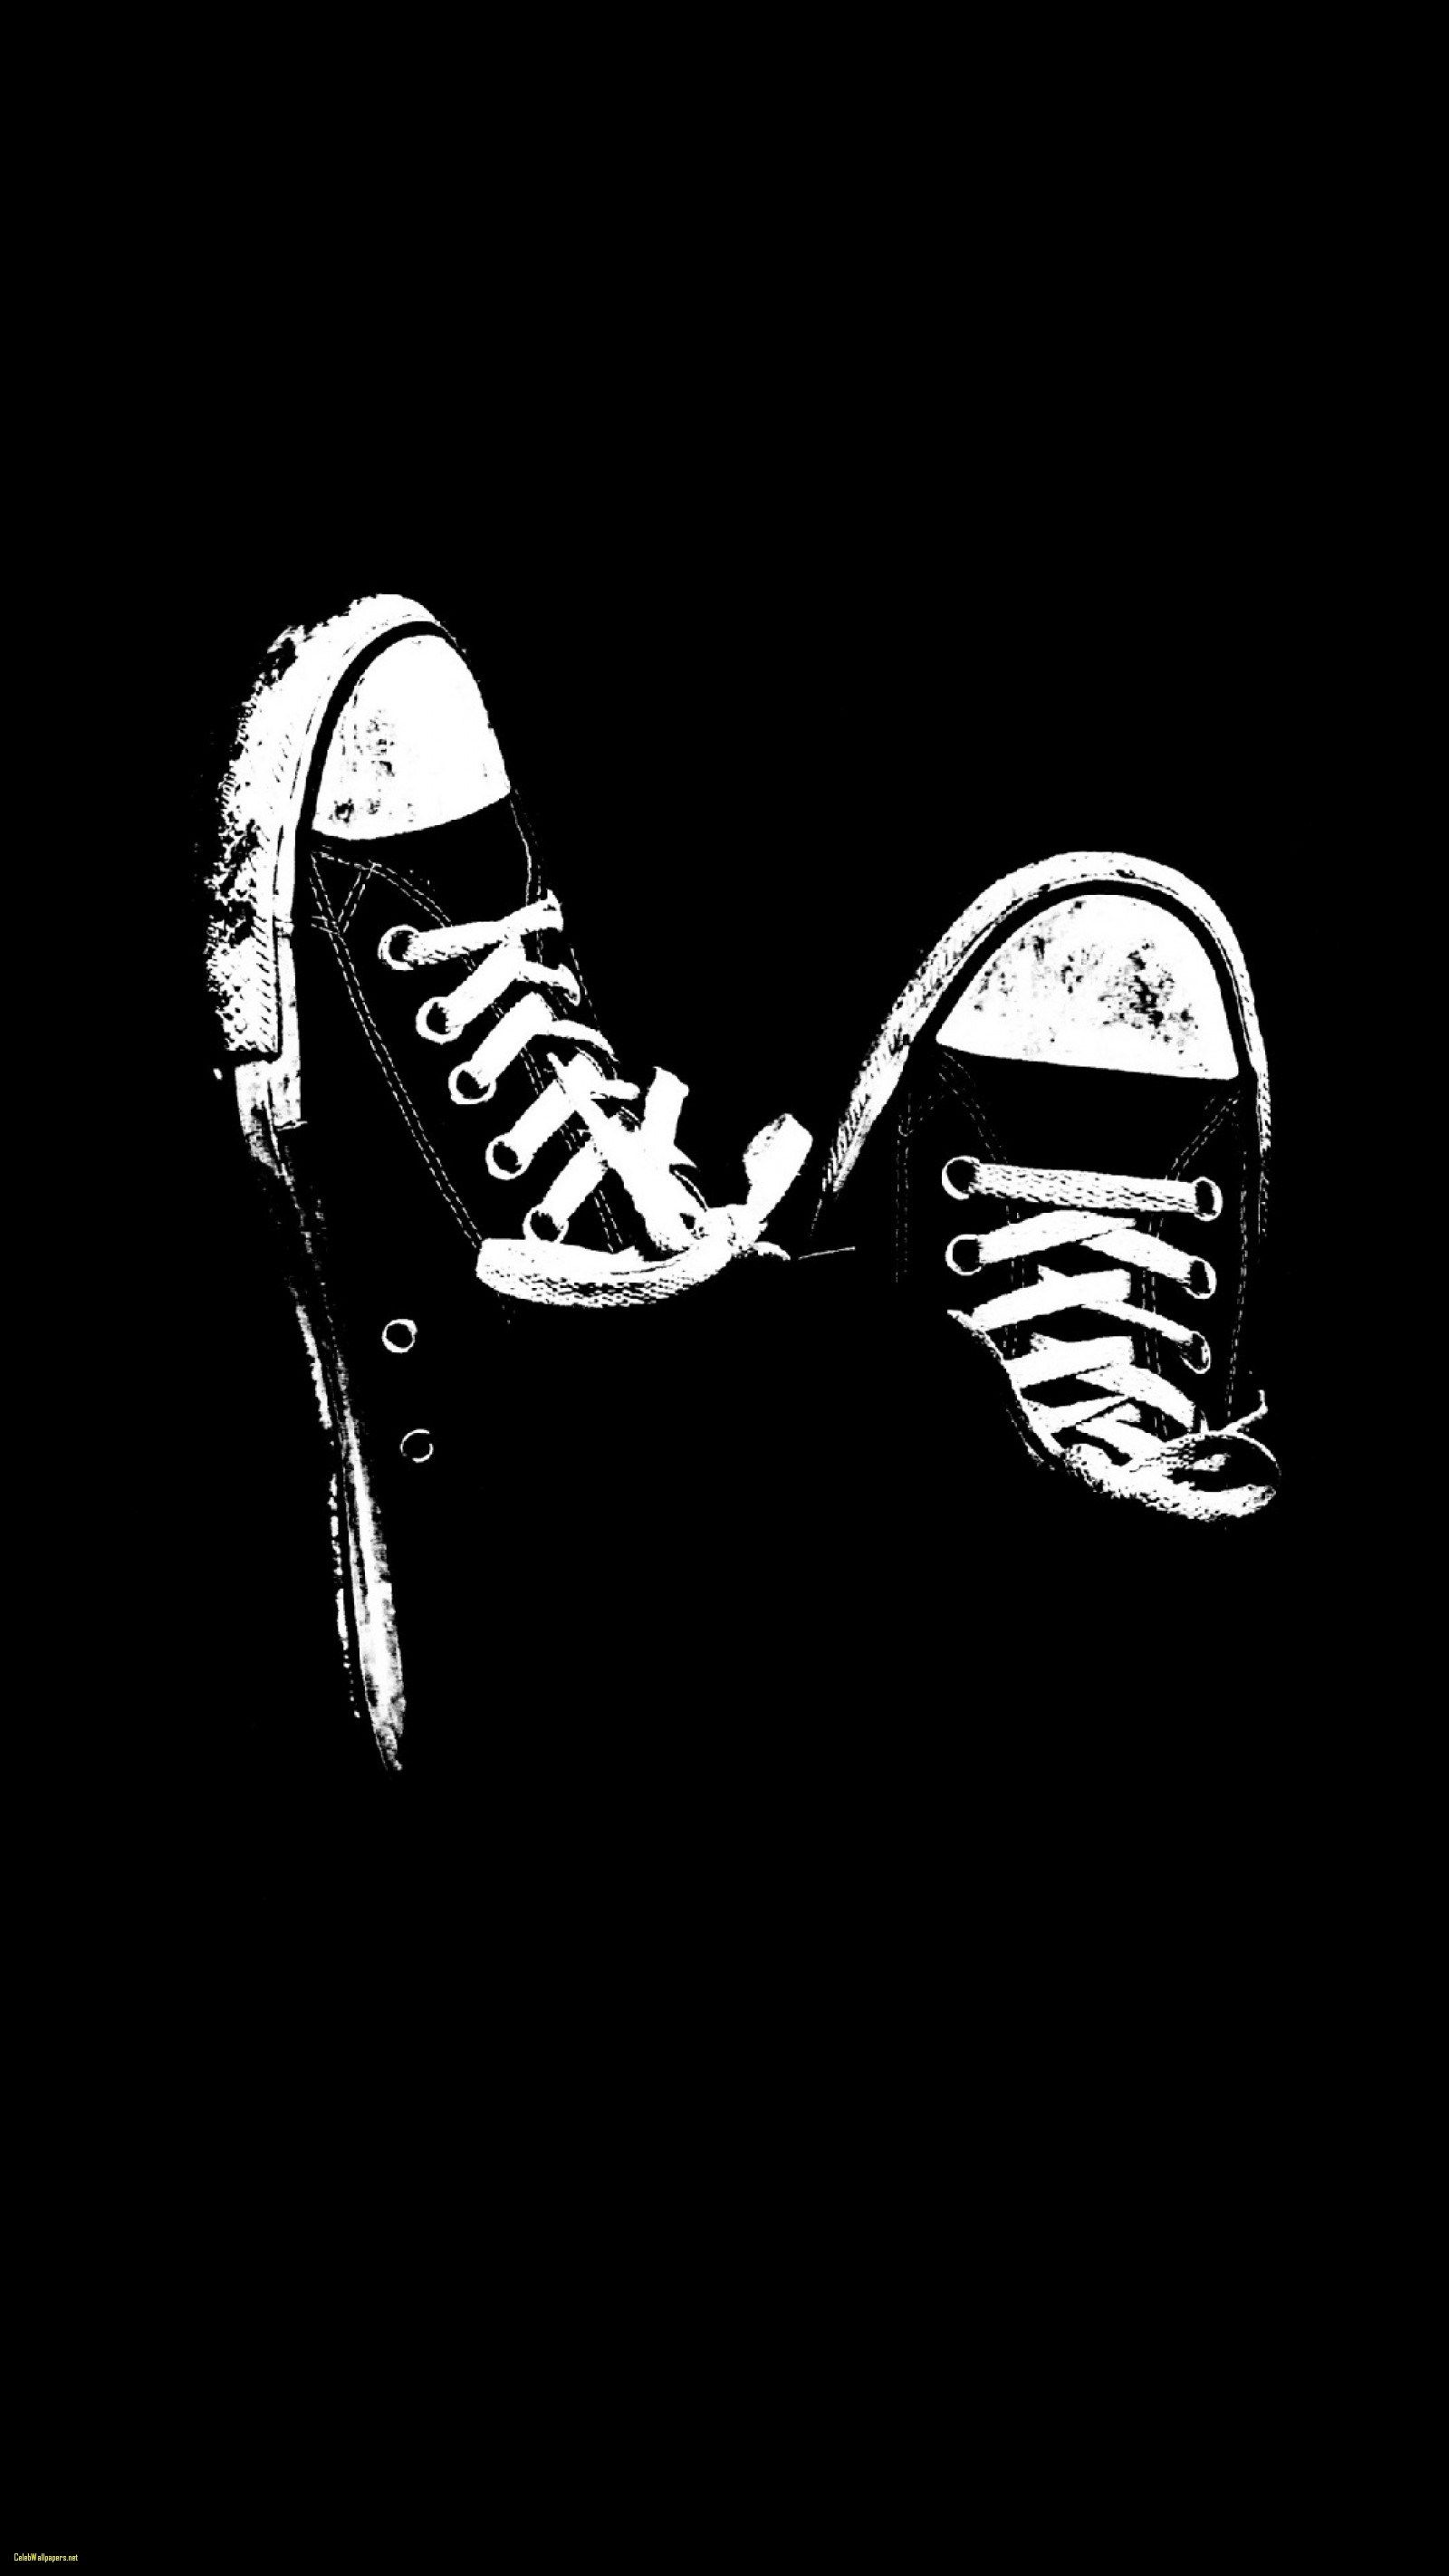 Converse Wallpaper Unique Iphone Wallpaper Converse All Star